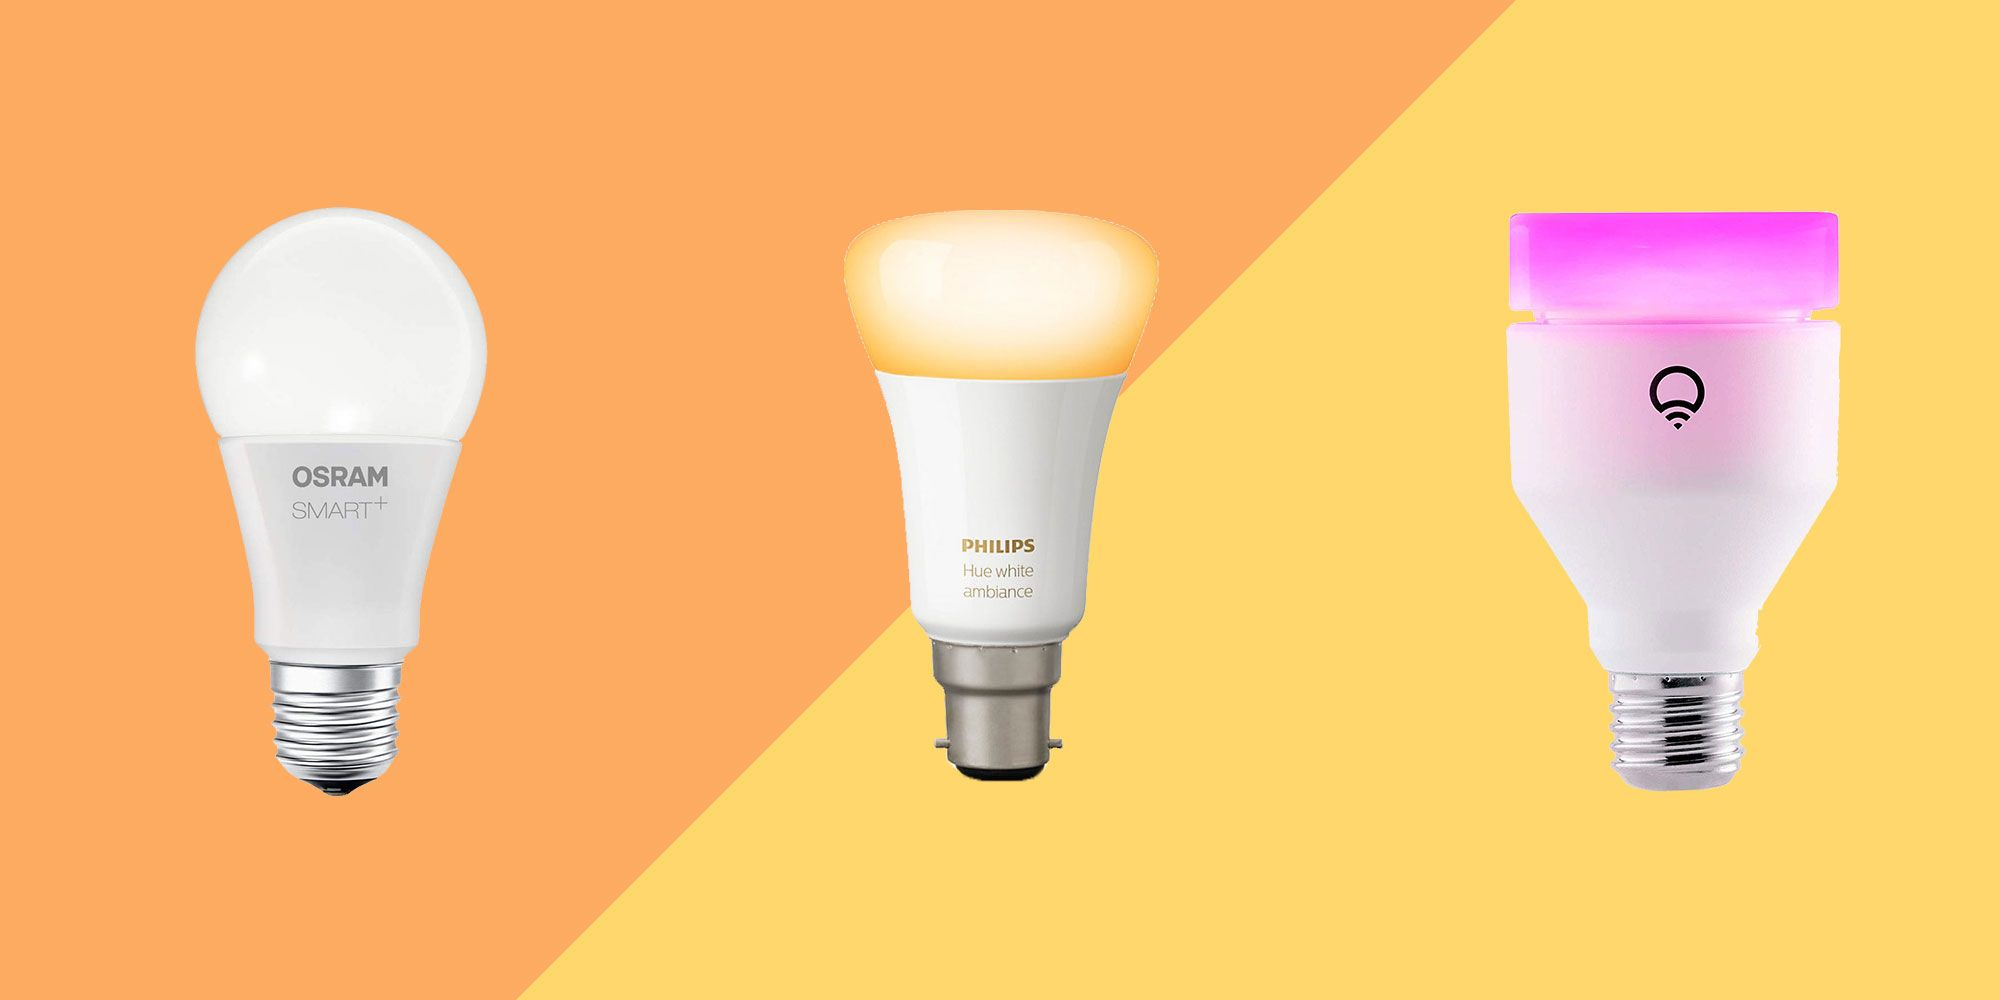 Ikea Tradfri vs Philips Hue vs Lifx